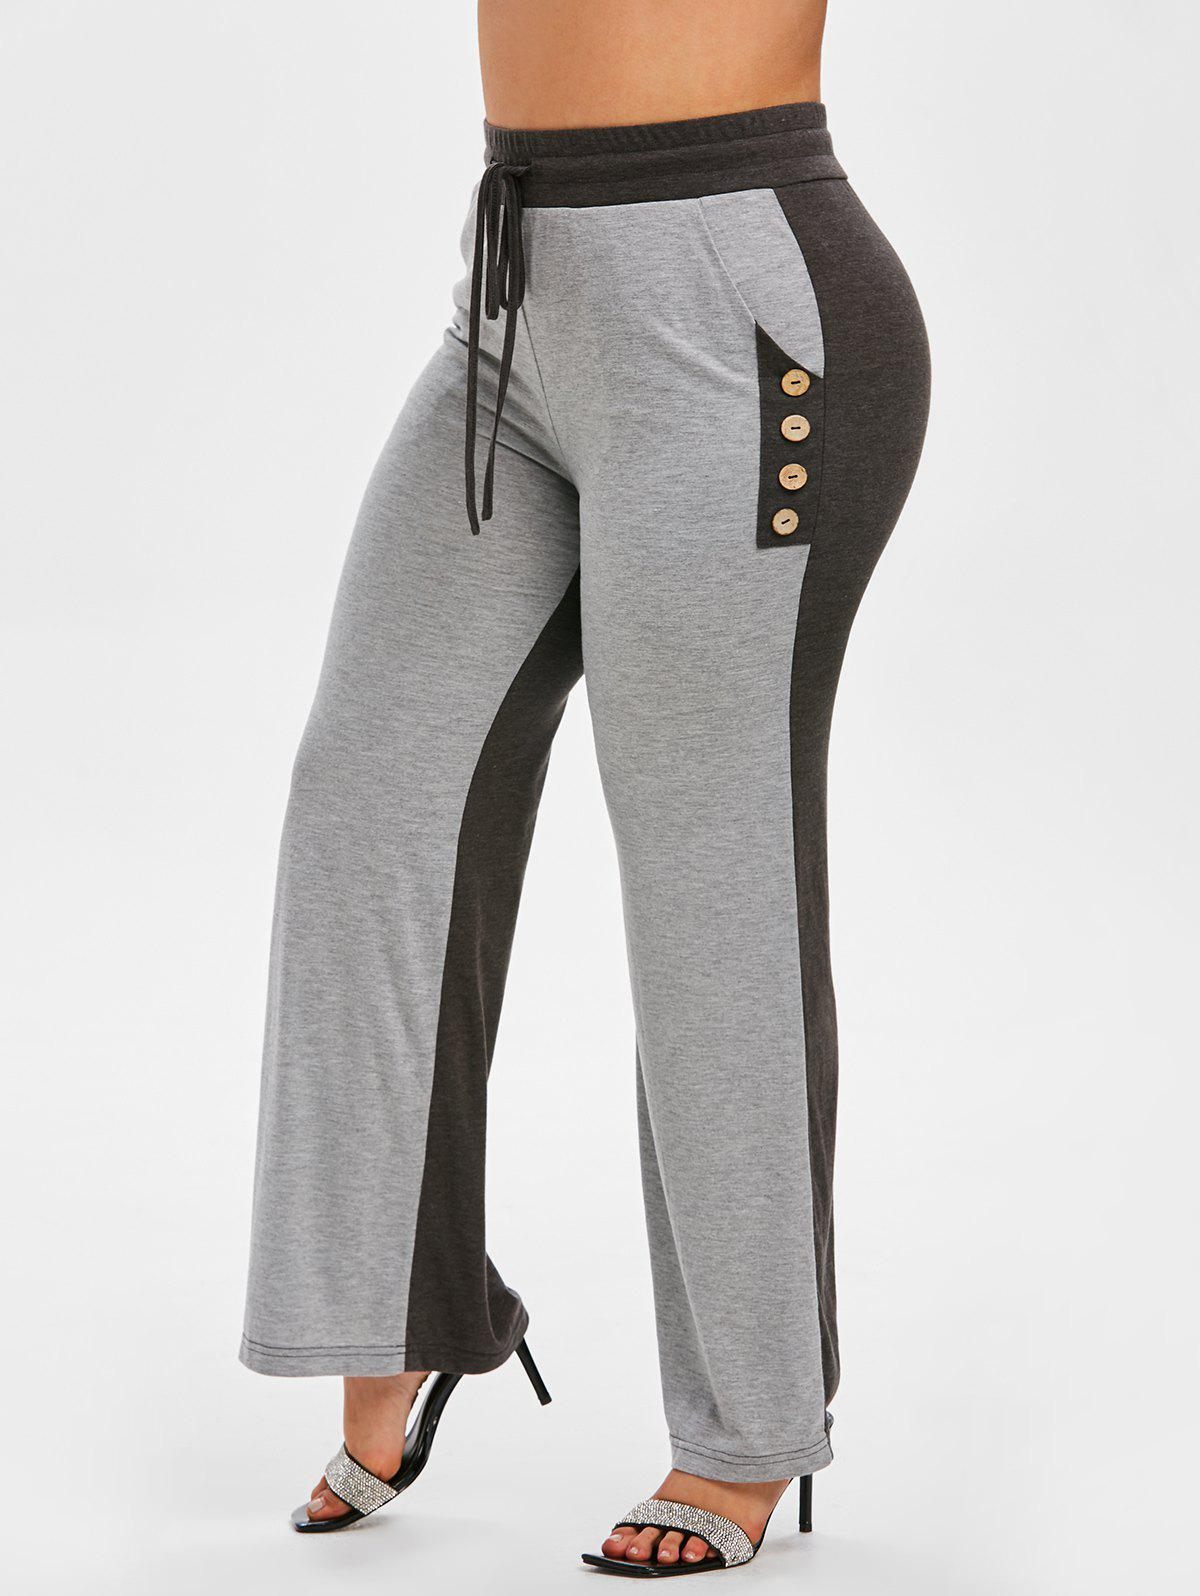 Plus Size Drawstring Two Tone Pants - GRAY 4X